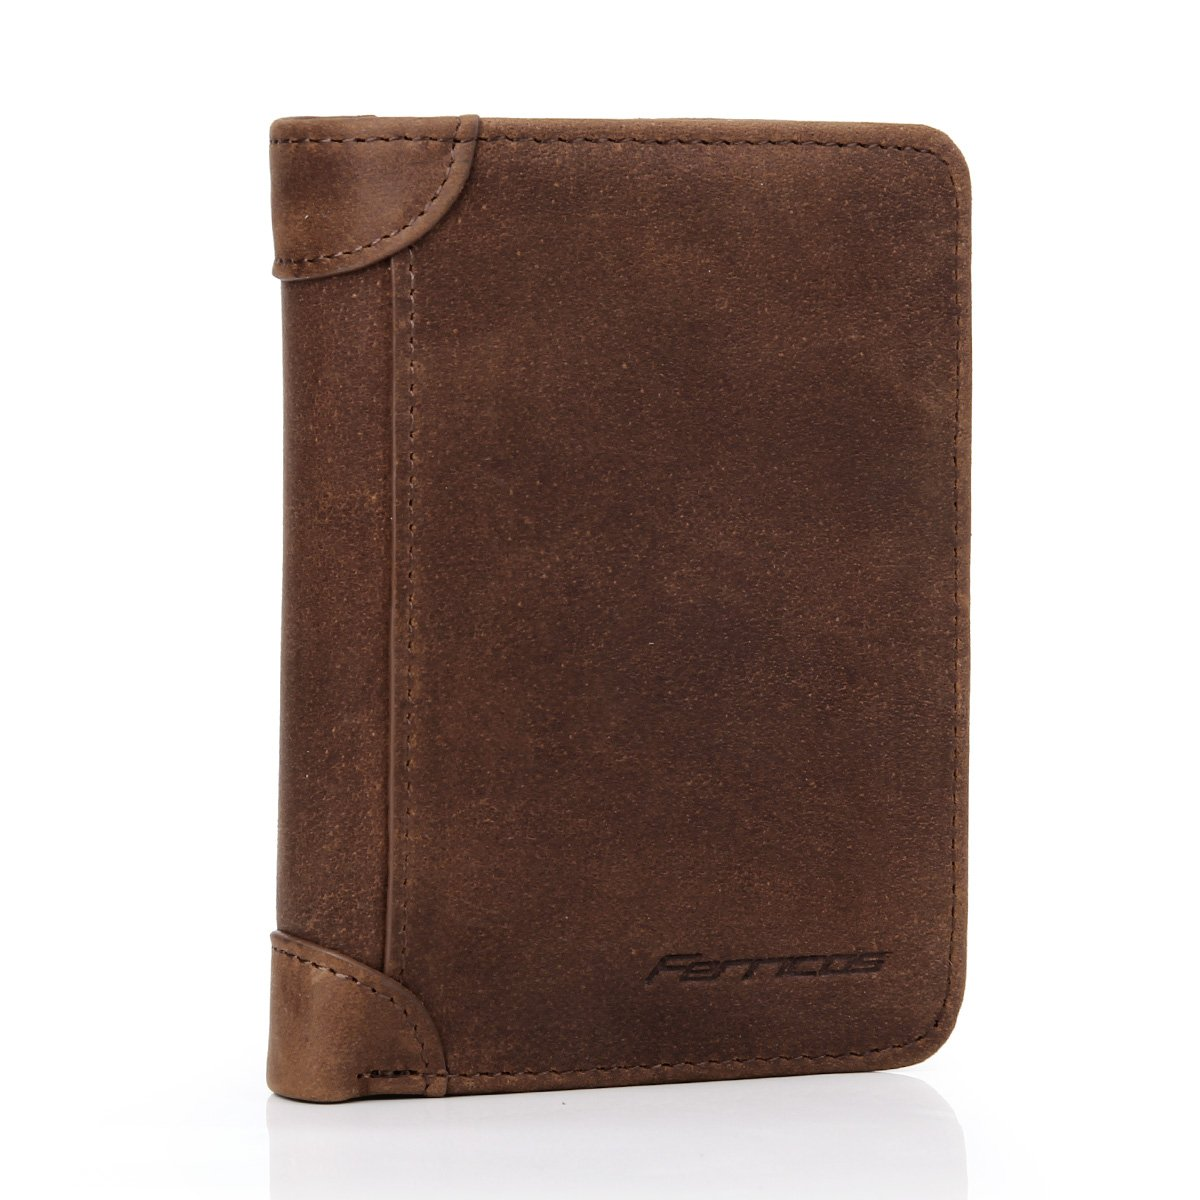 Ferricos RFID Men Cowhide Leather Portrait Short Purse Extra Capacity Trifold Inner Pocket Wallet Card Case Cash Coin Bag Money Clip ID Photo Holder Men's Gift Crazy Horse Brown